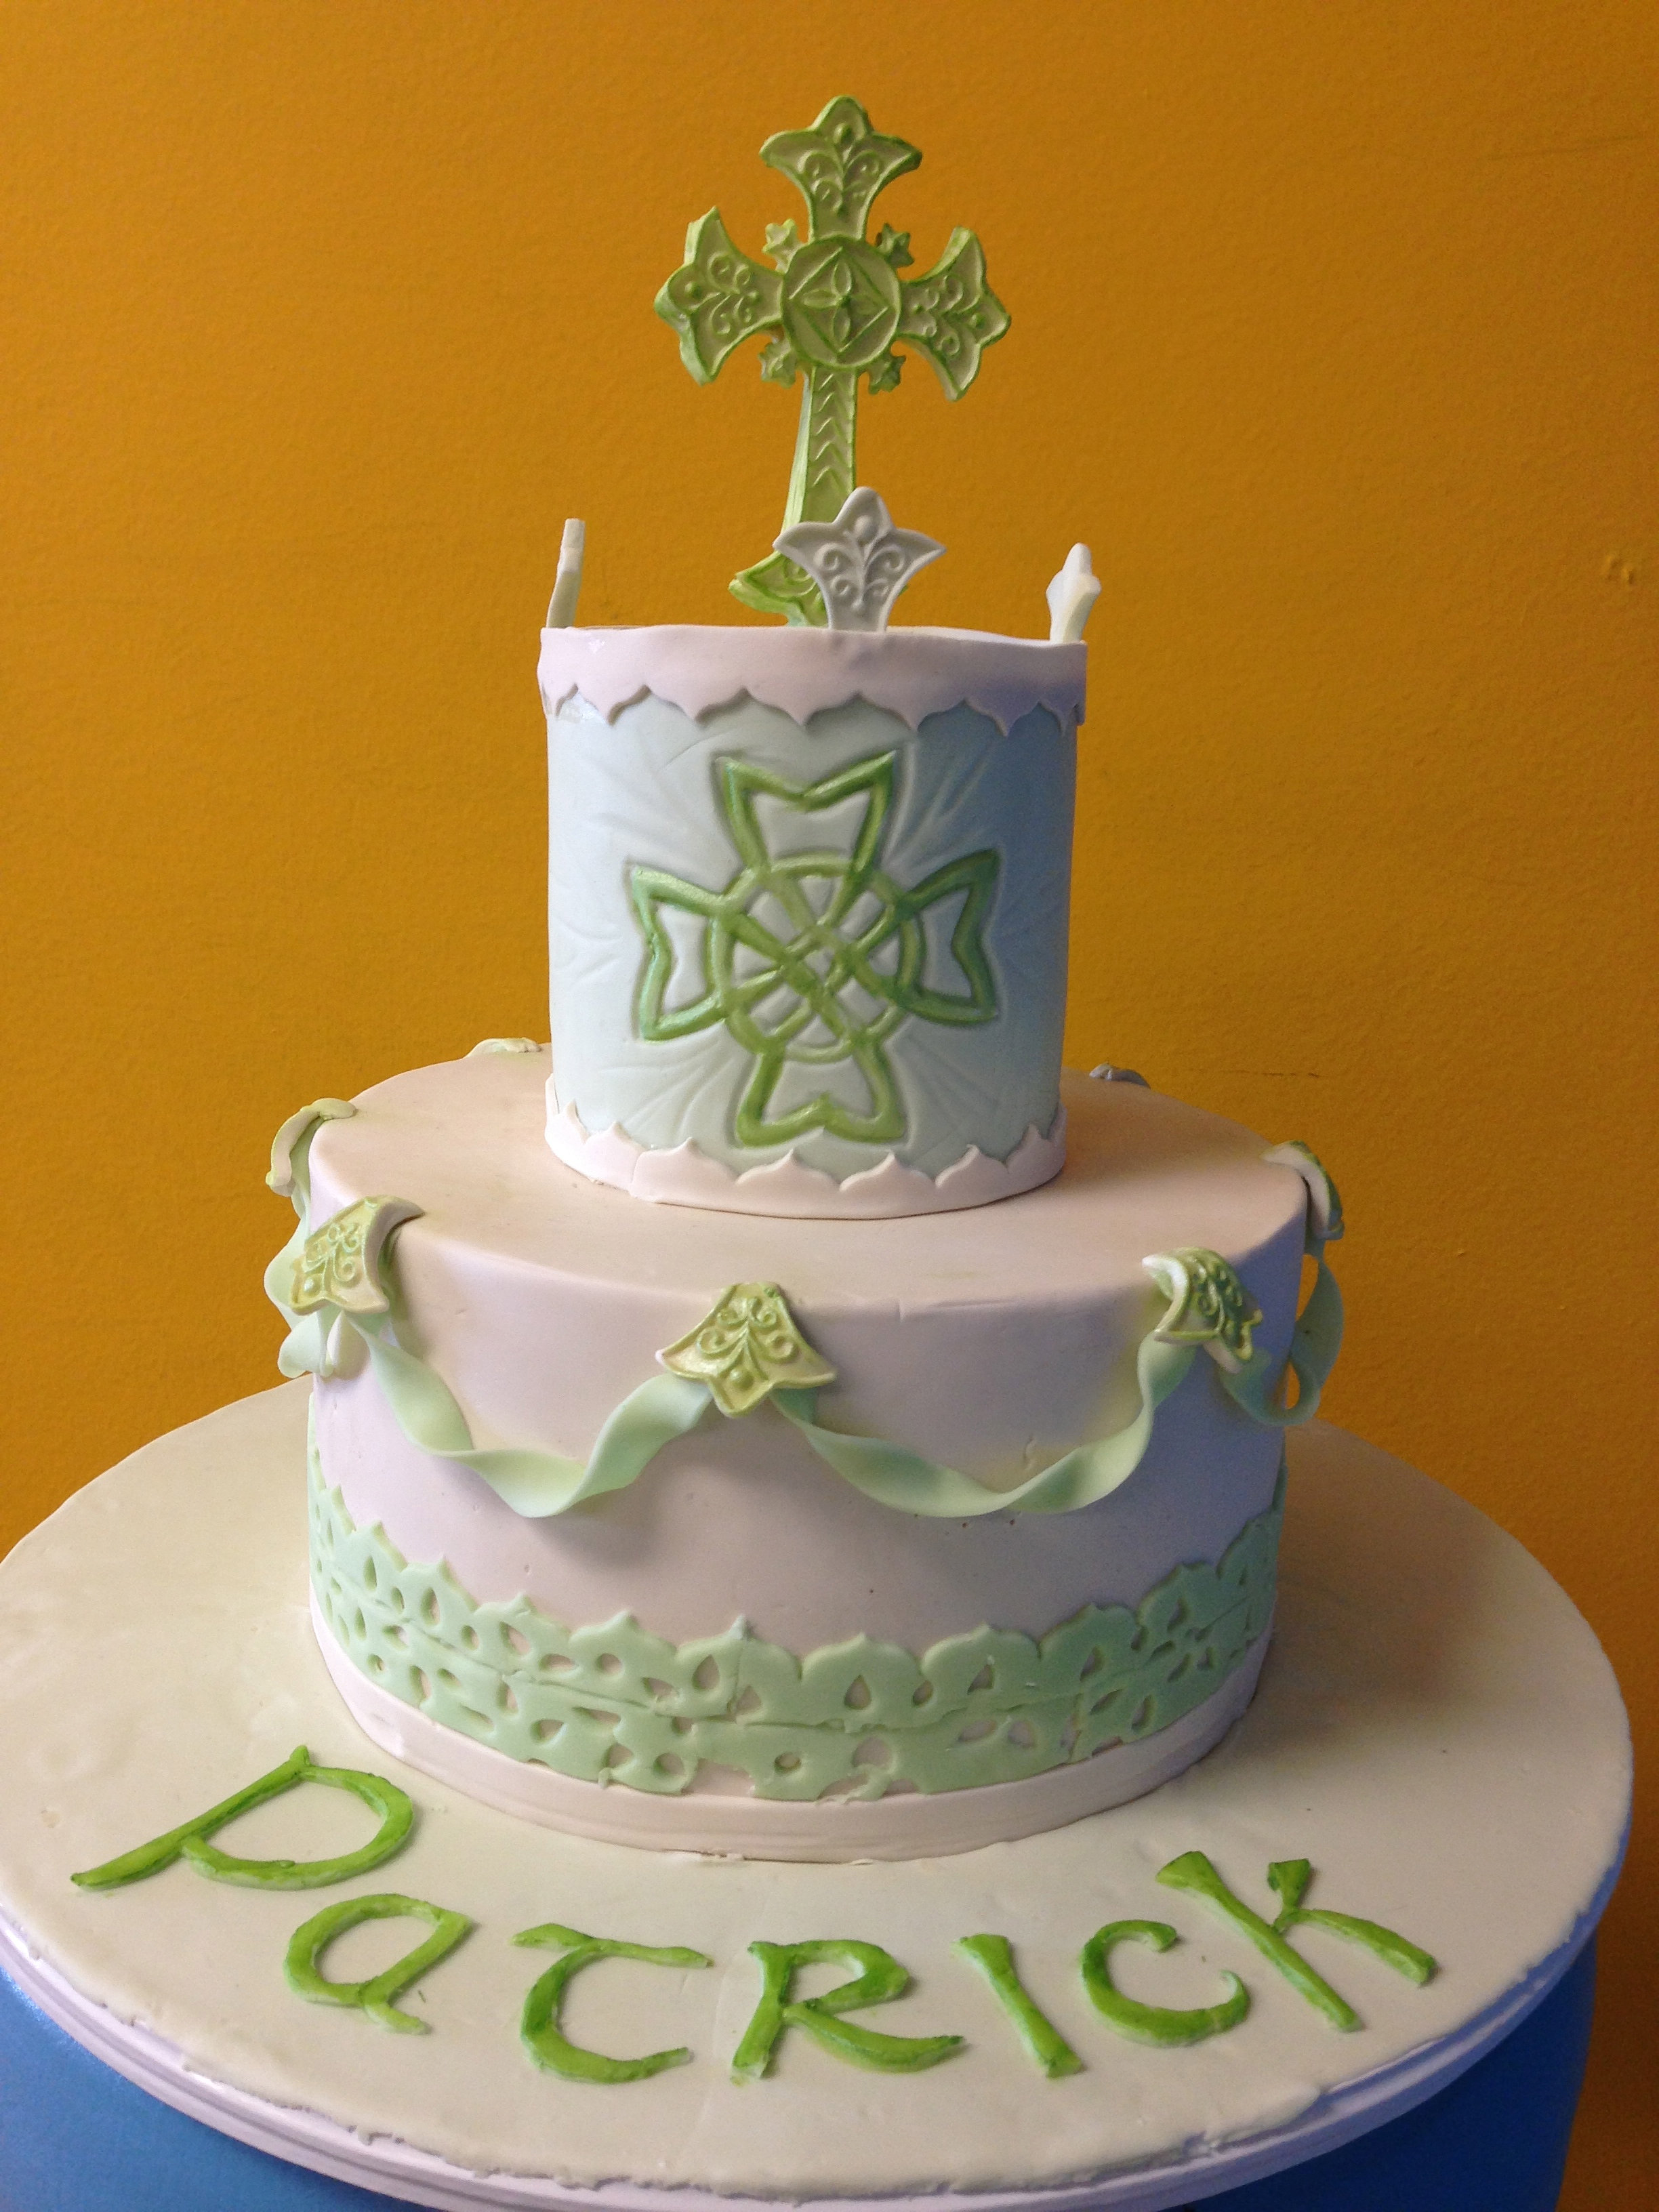 22 Birthday Cakes Images